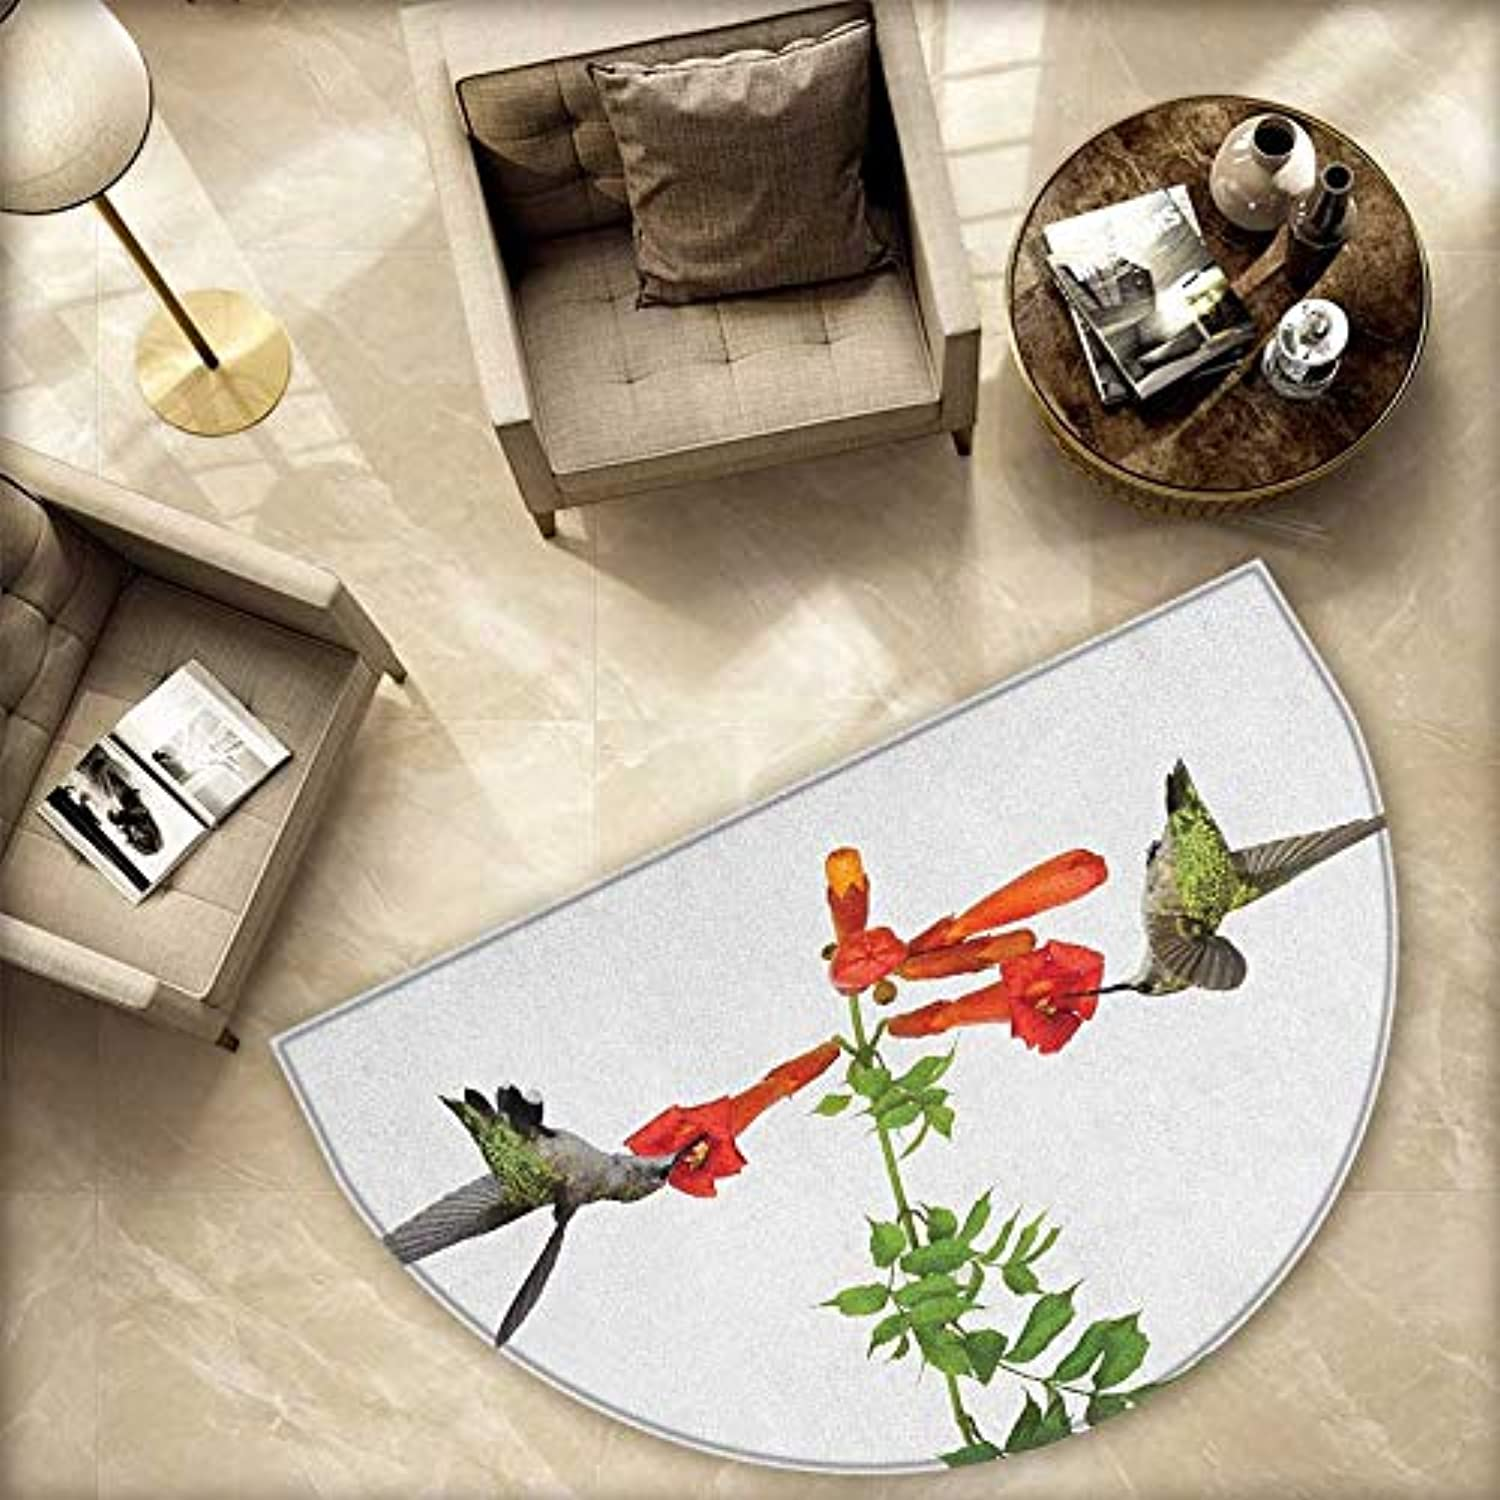 Hummingbirds Semicircle Doormat Two Hummingbirds Sipping Nectar from a Trumpet Vine Blossoms Summertime Halfmoon doormats H 78.7  xD 118.1  Red Black Green